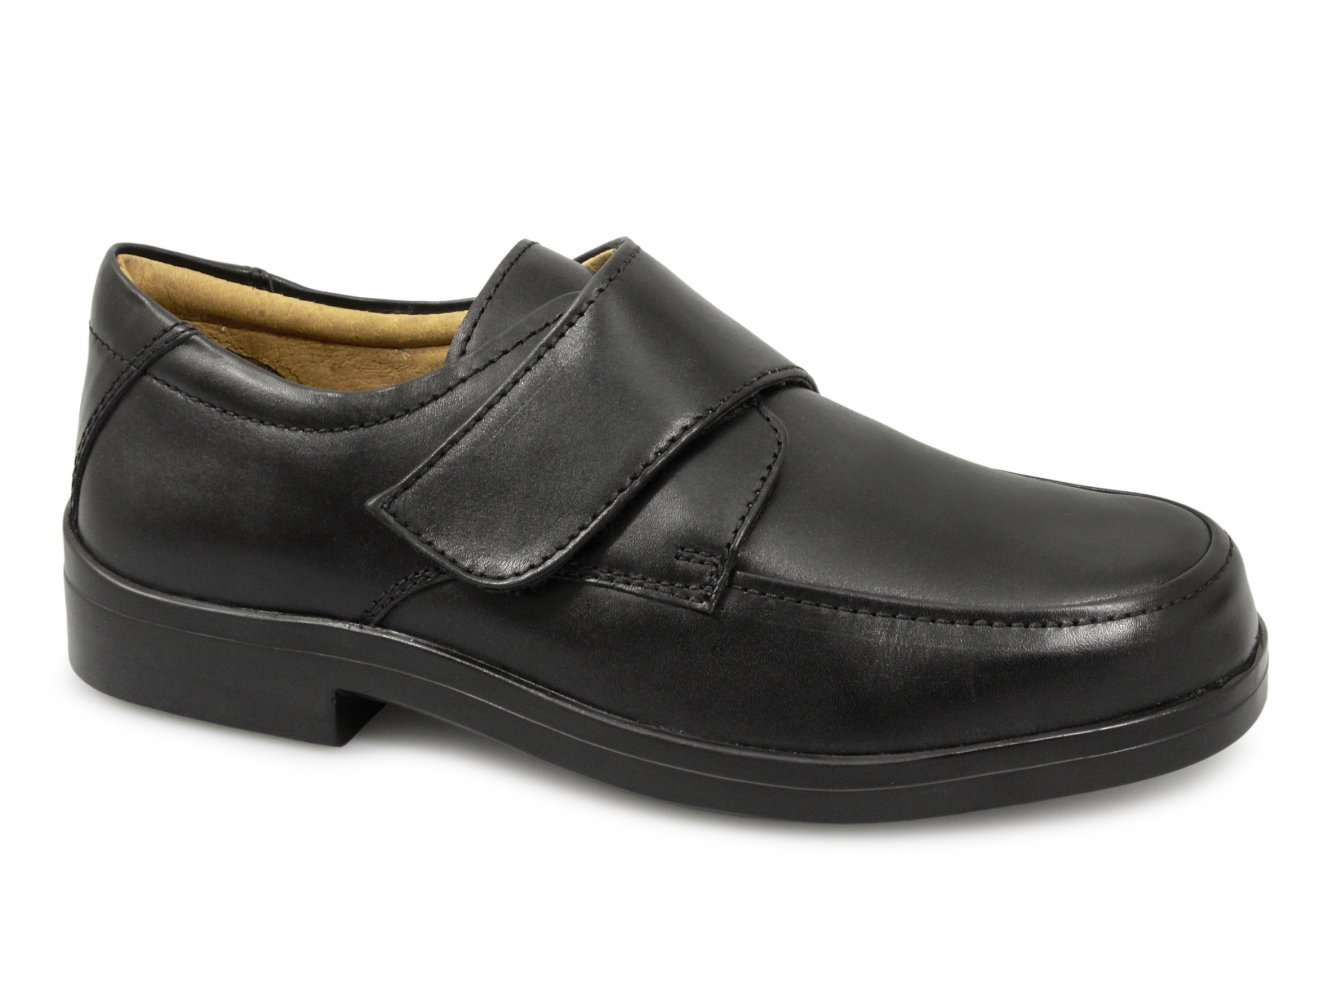 Roamer - Mocasines para hombre 47 EU|Black Softie Leather